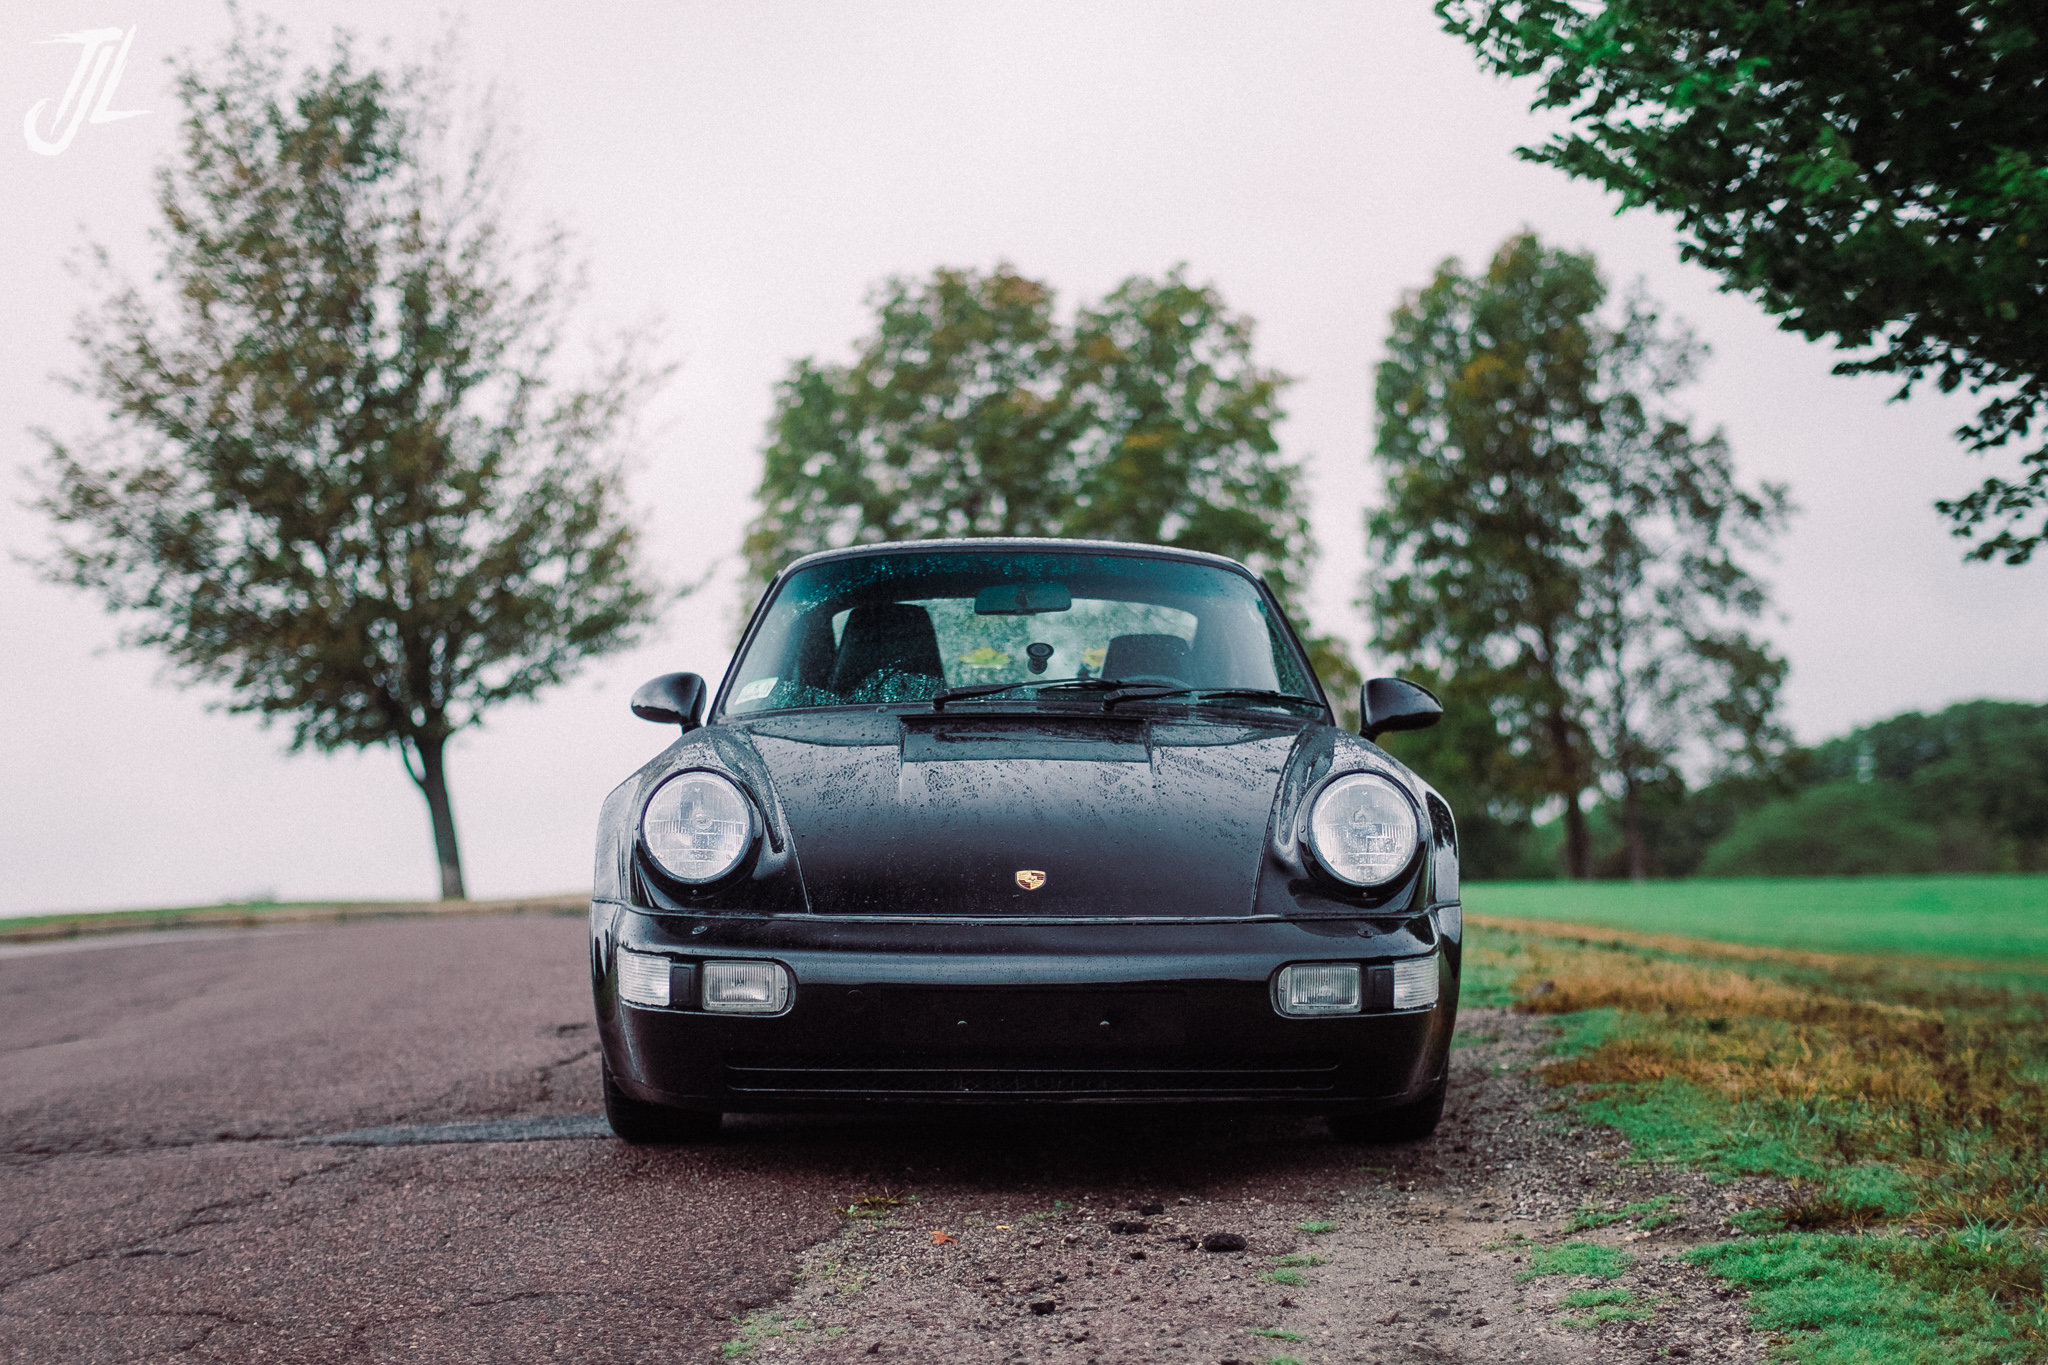 turbo964 compressed (4 of 17).jpg